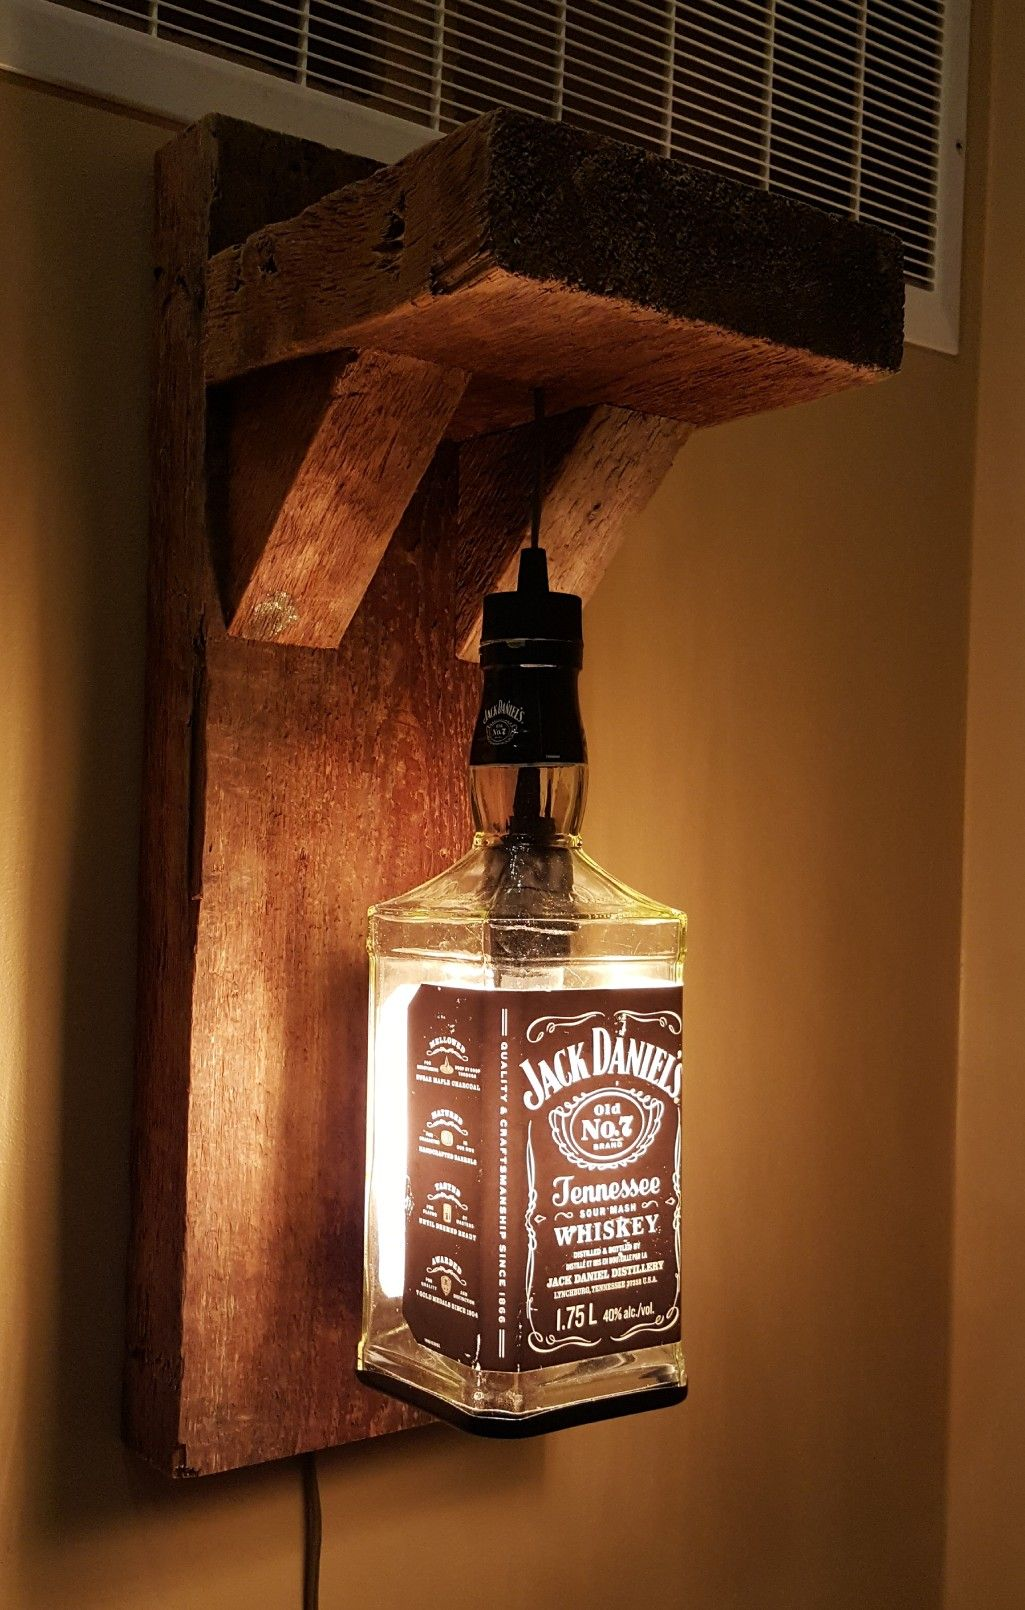 I made this lamp out of galvanized